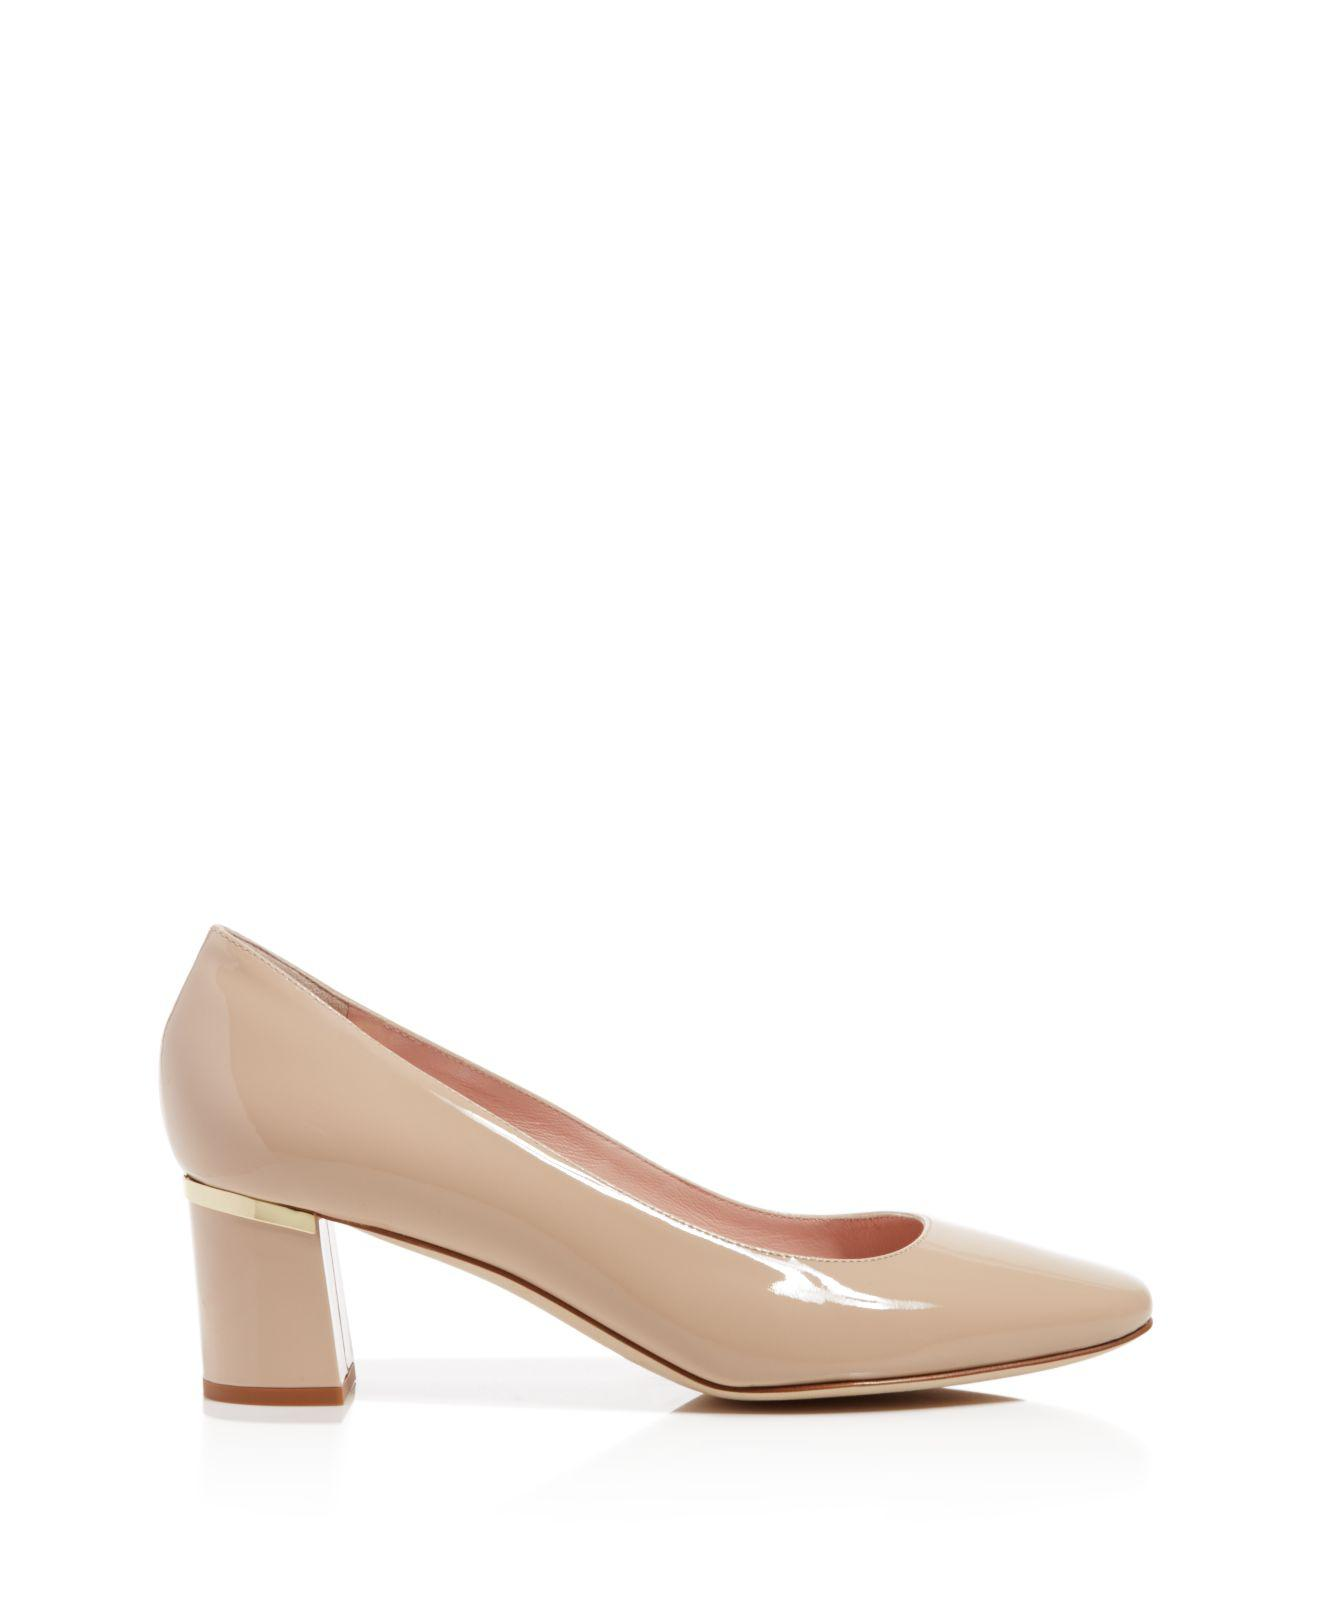 563bbc57d6f Lyst - Kate Spade Dolores Too Patent Leather Mid Heel Pumps in Blue